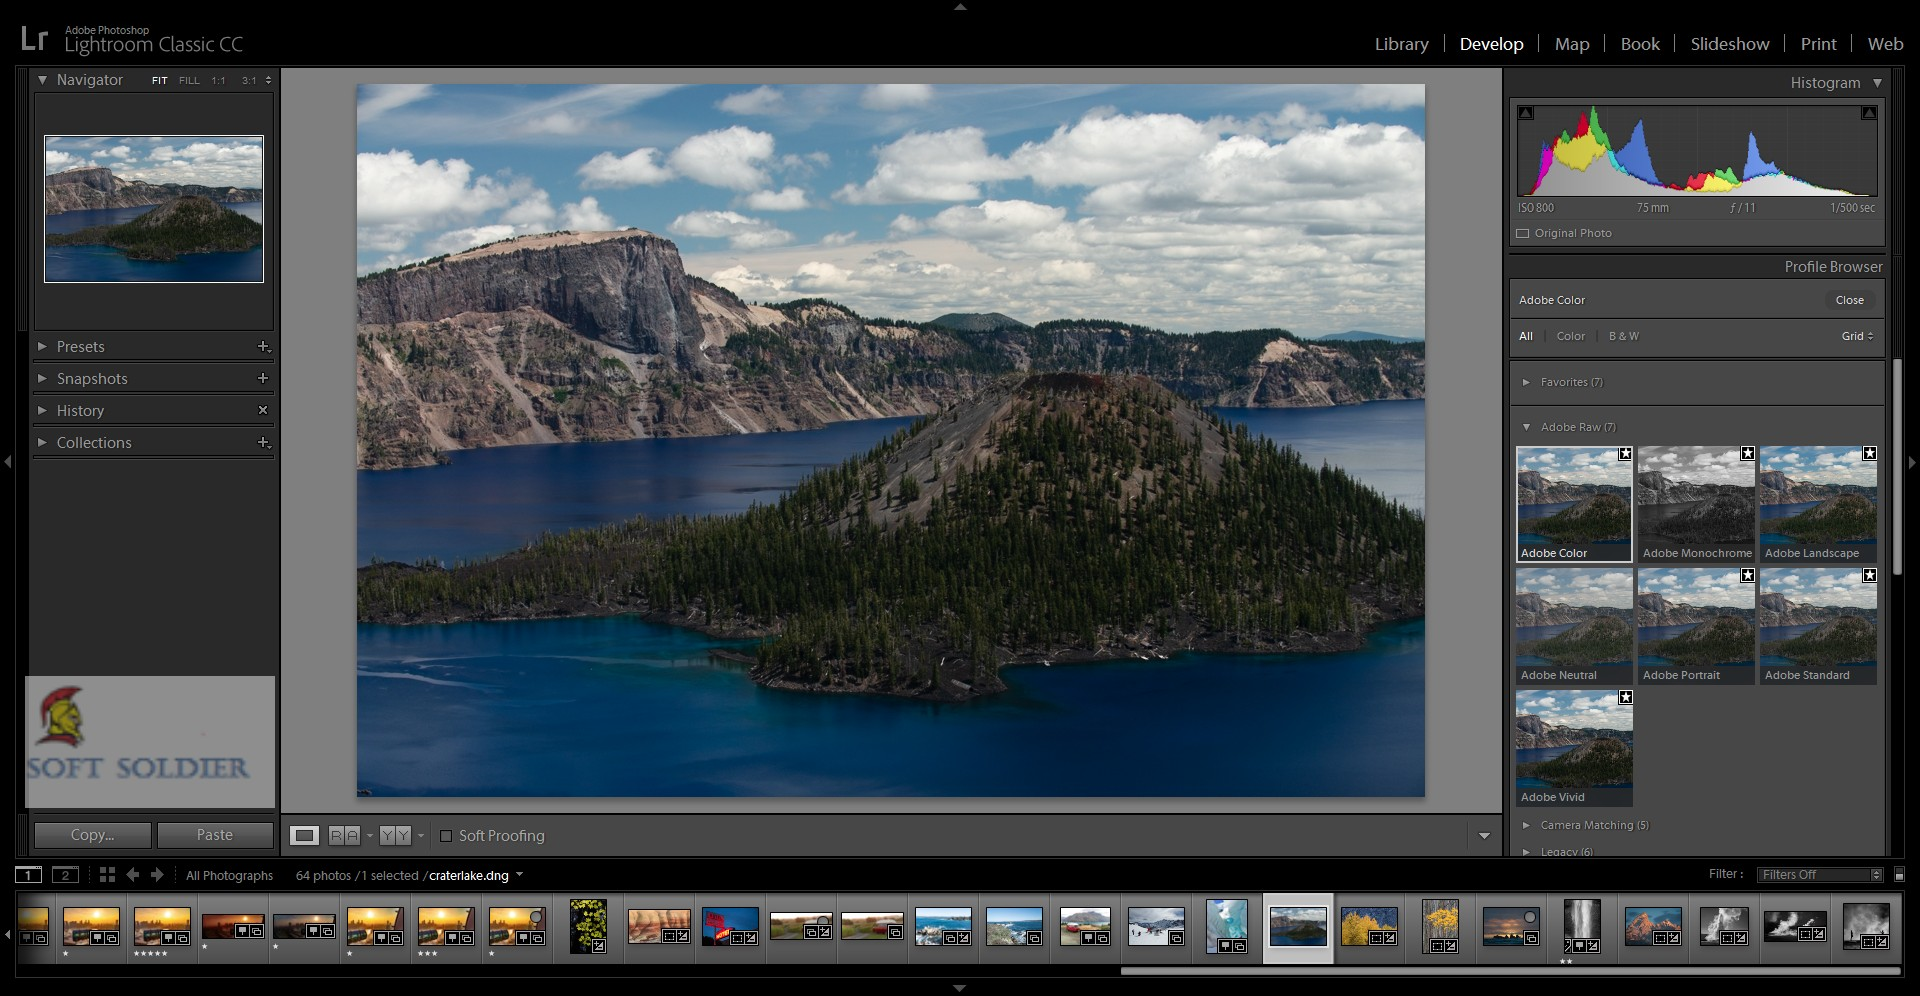 Adobe Photoshop Lightroom Classic CC